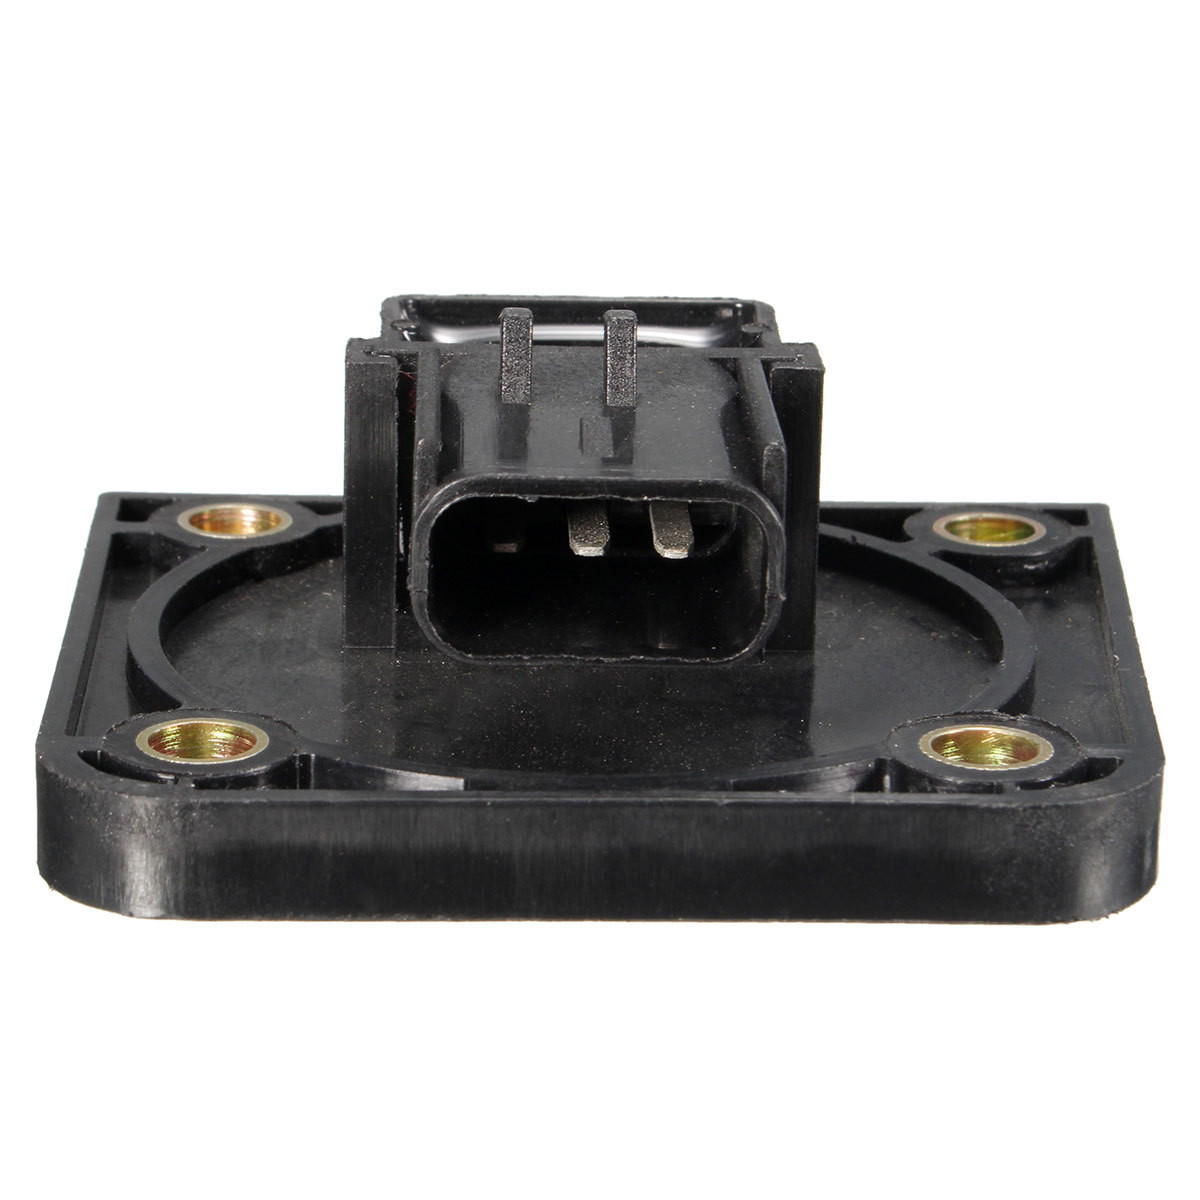 Camshaft Position Sensor For Dodge Chrysler Neon 1995-2005